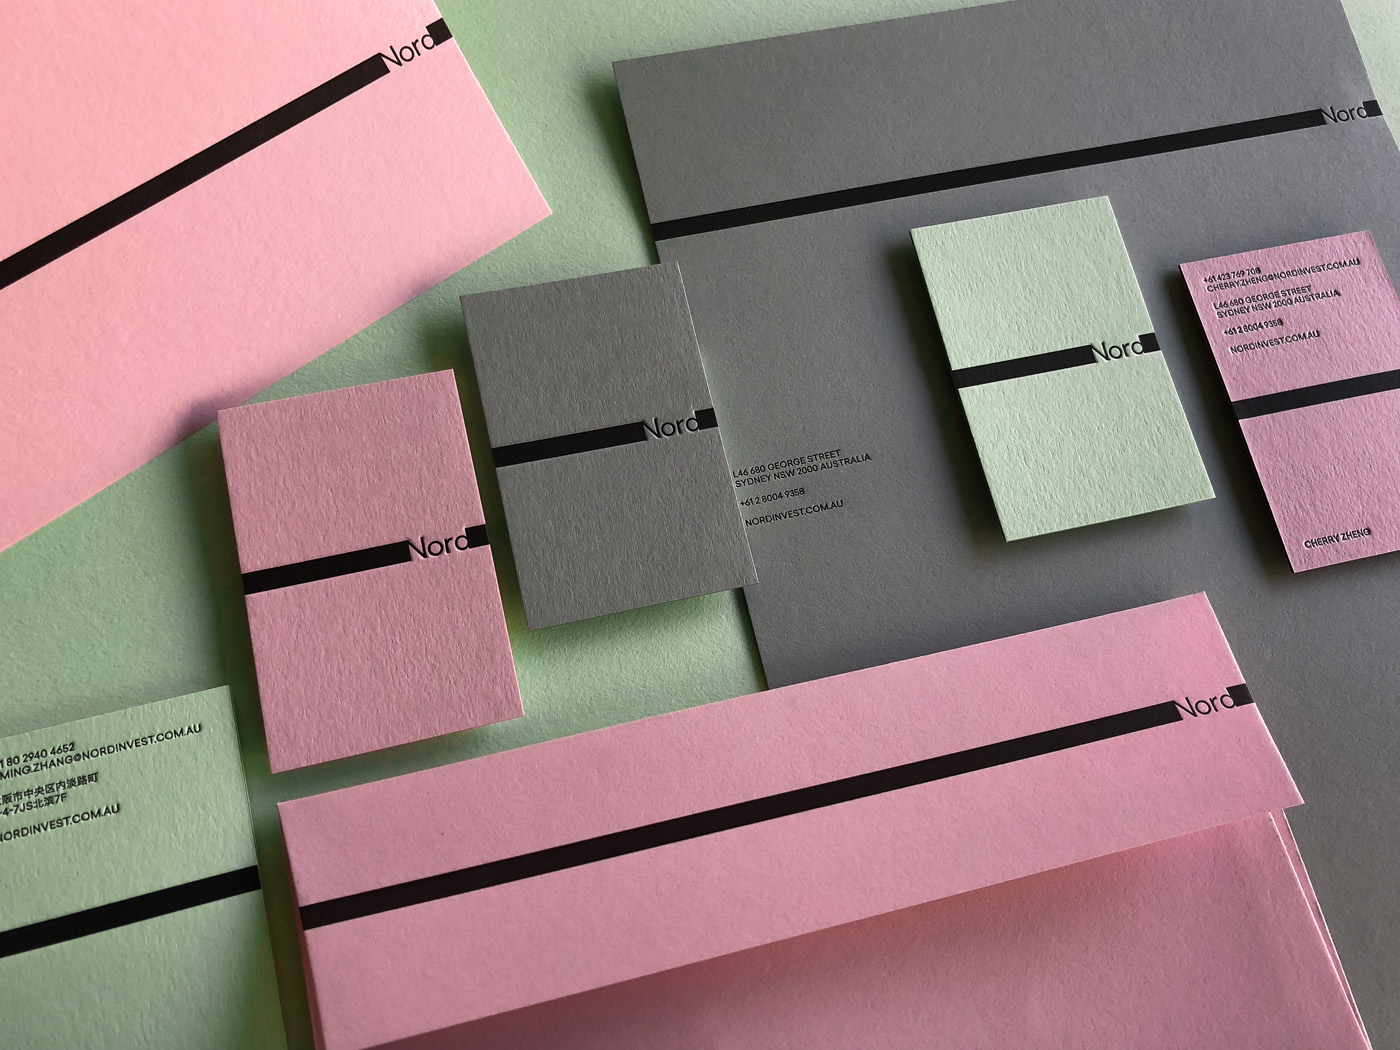 Letterpress Business Cards Letterhead Envelopes for Nord on Colorplan 1